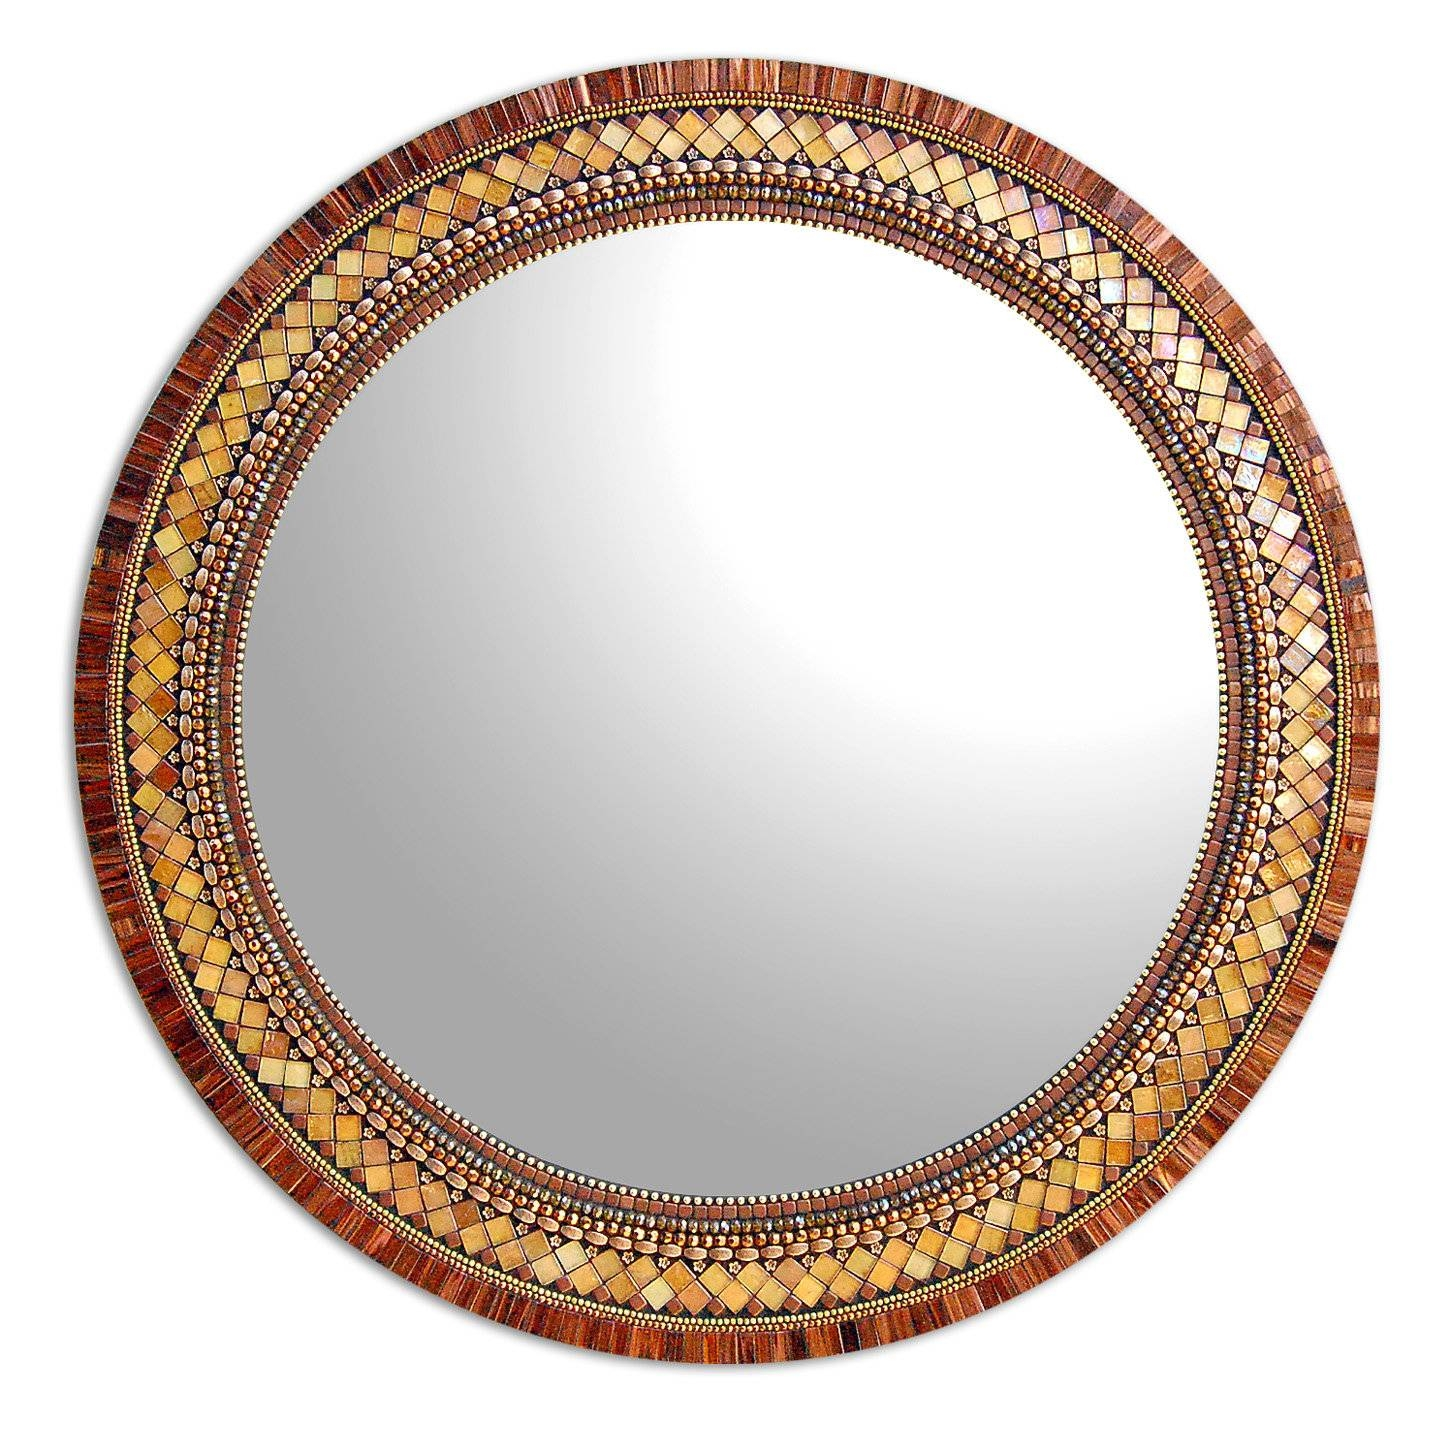 Round Golden Bronzeangie Heinrich (mosaic Mirror) | Artful Home With Round Mosaic Mirrors (View 9 of 15)